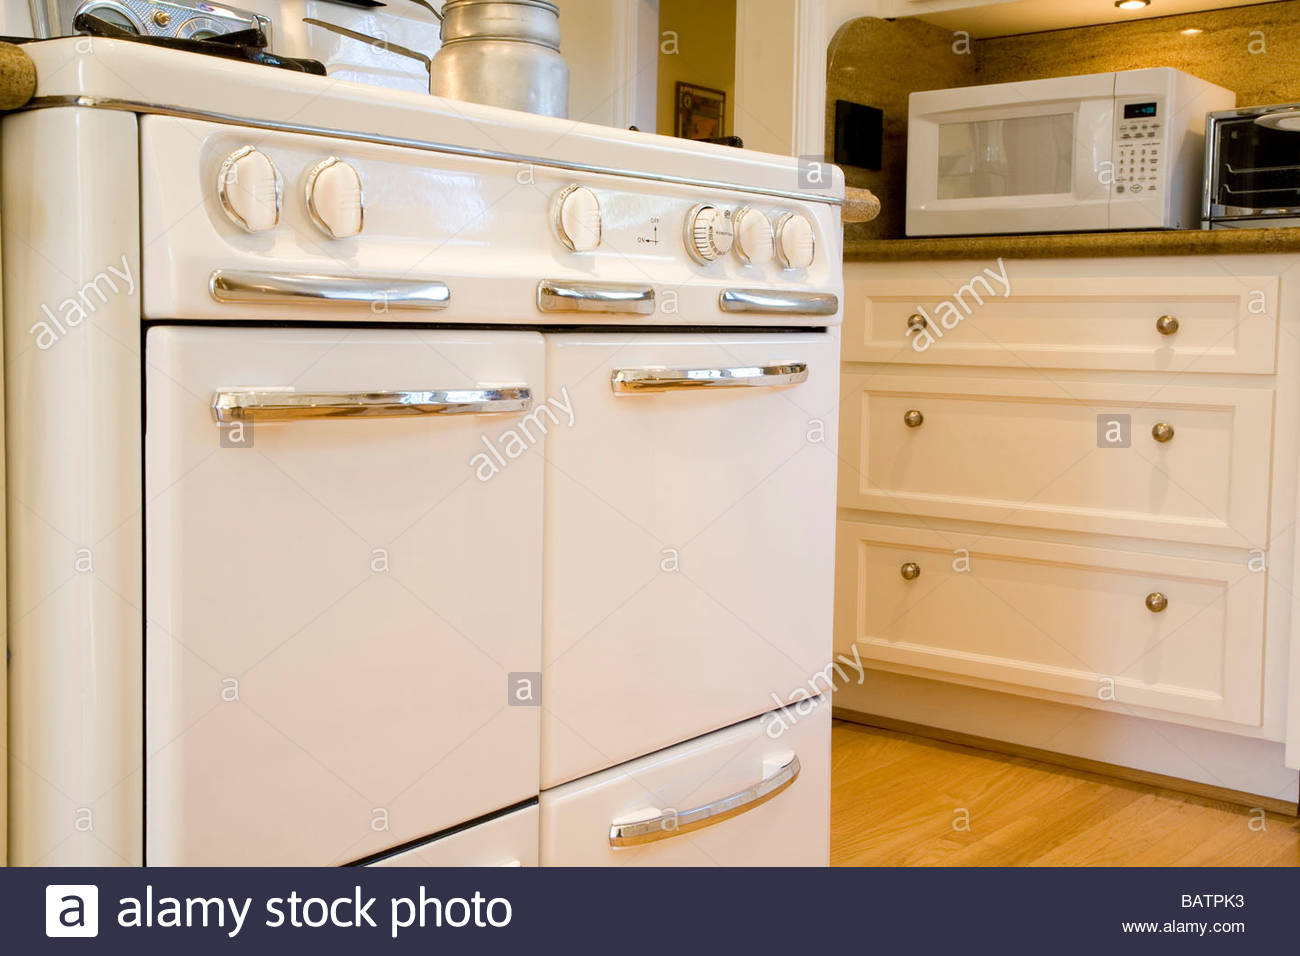 Oldfashioned Oven In Country Style Kitchen Stock Photo